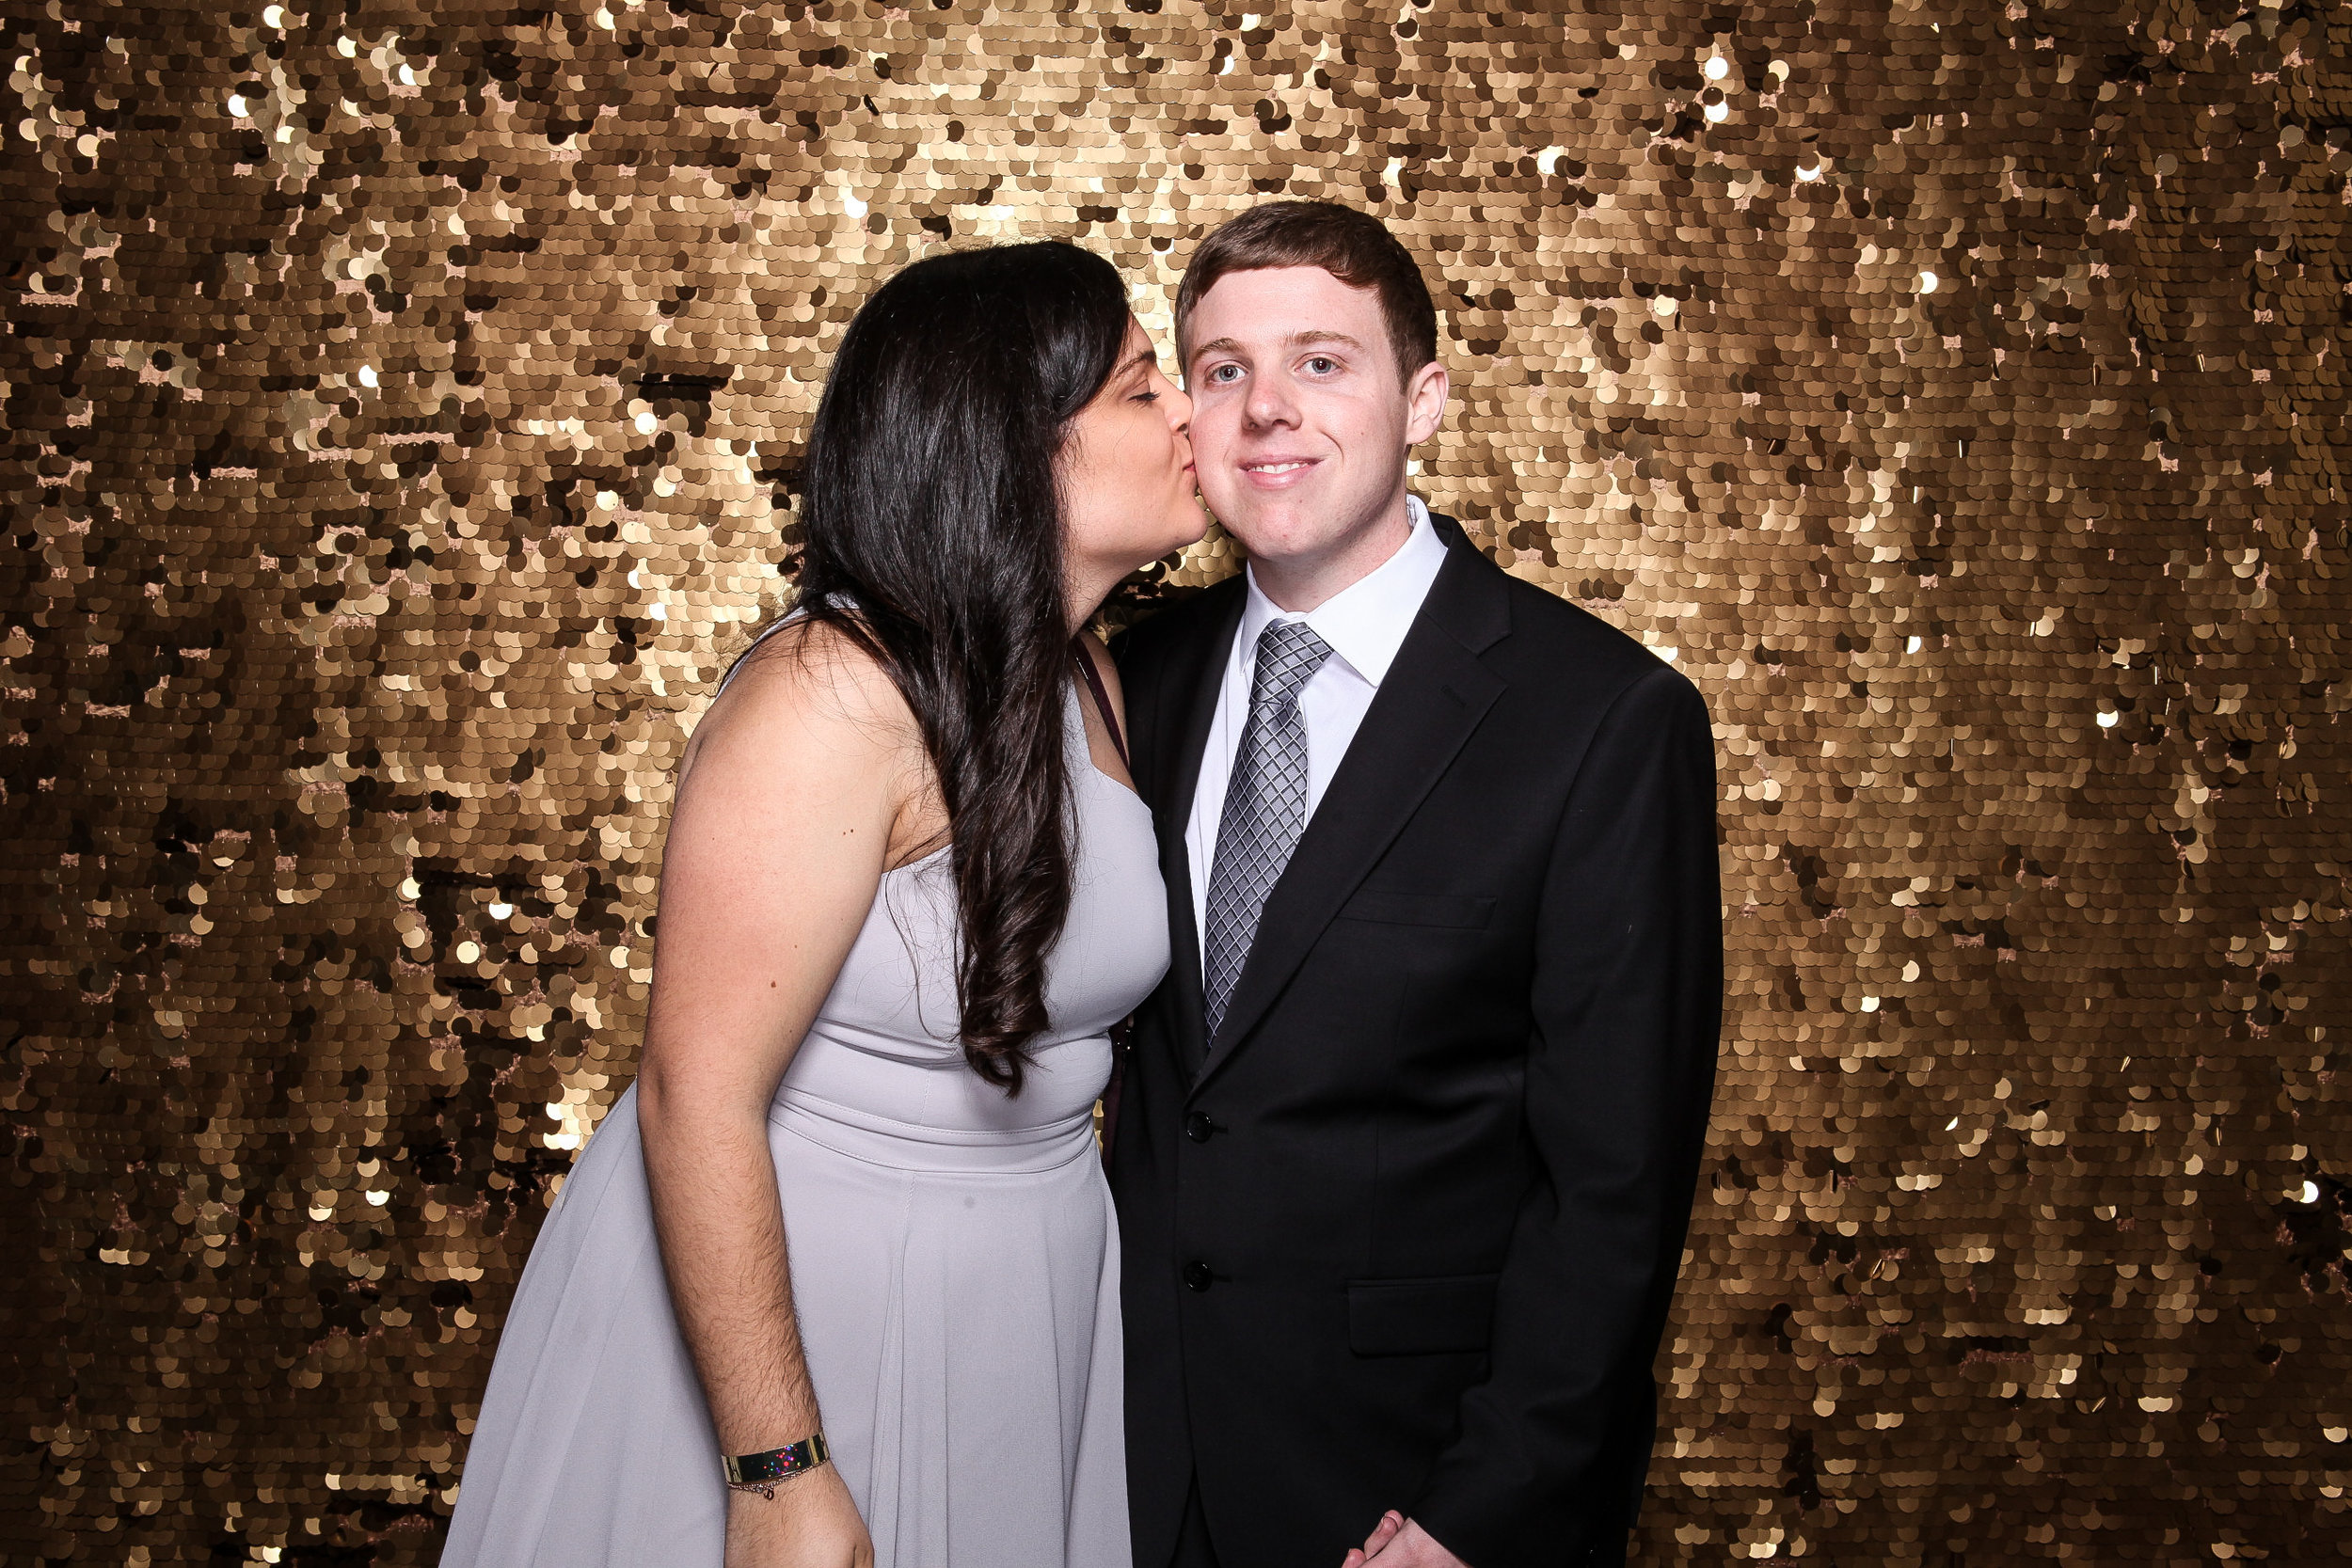 20190503_Adelphi_Senior_Formal-114.jpg